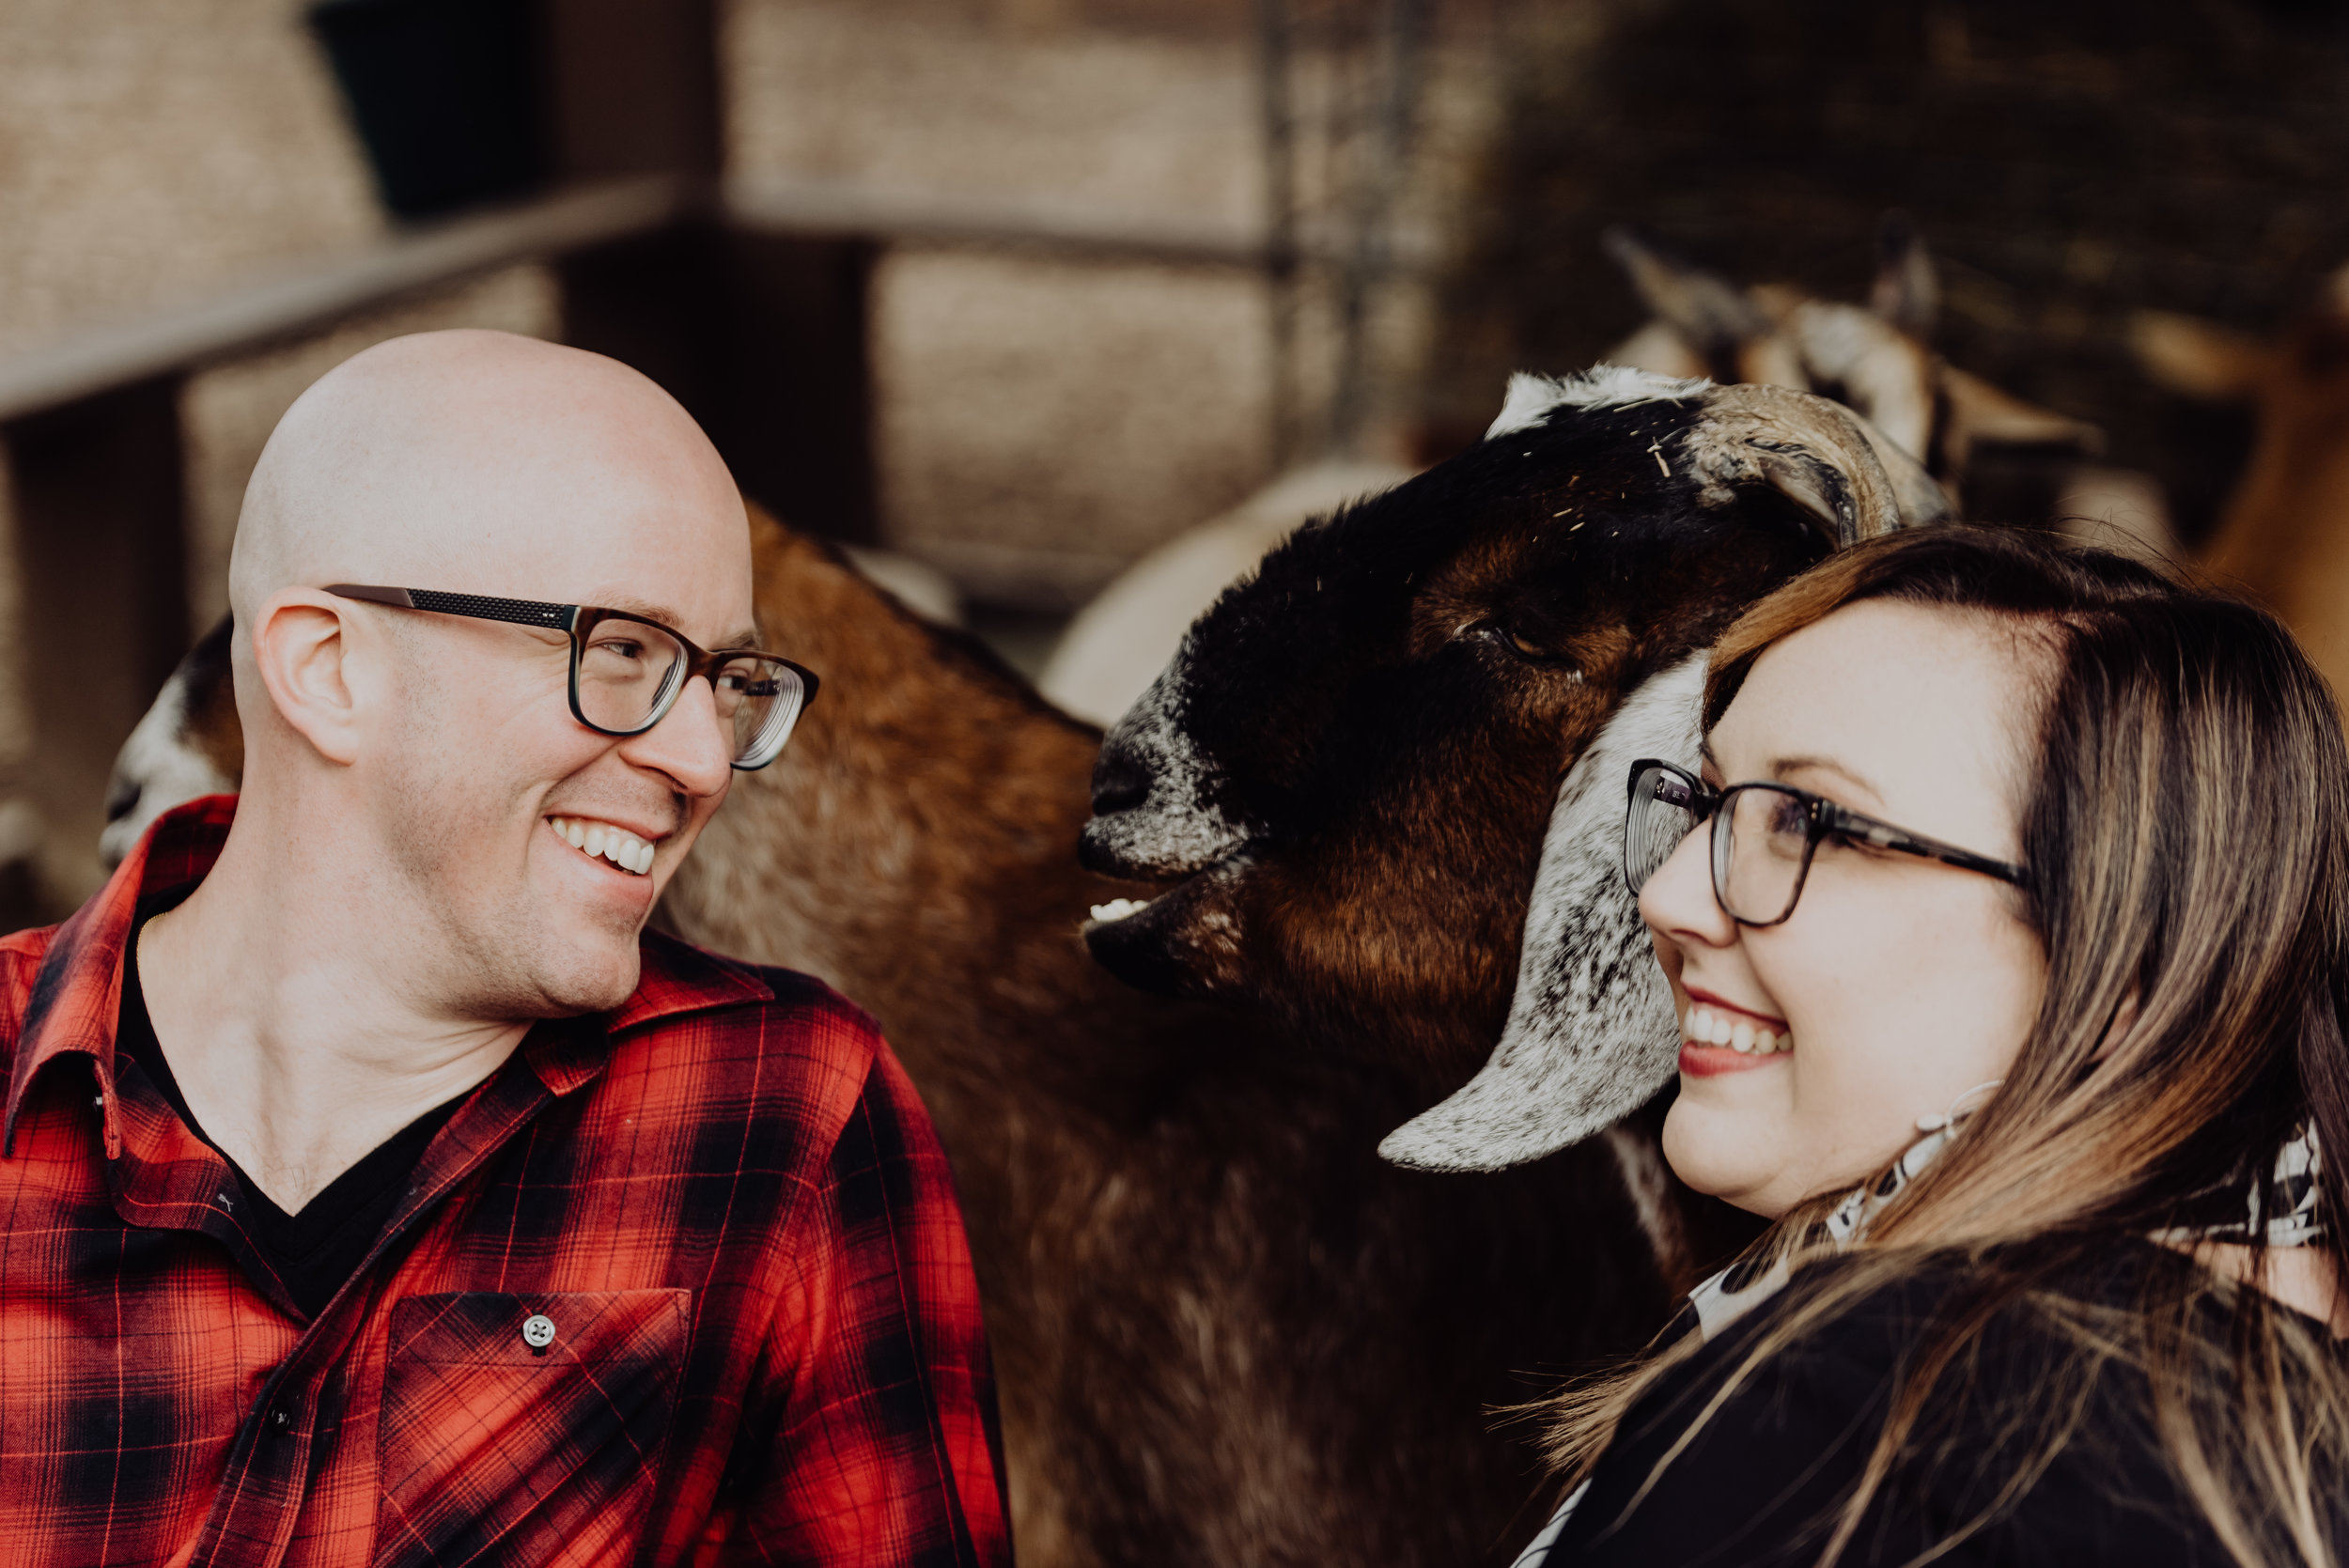 emily and daniel nashville zoo engagement session wilde company-3011-Edit.jpg